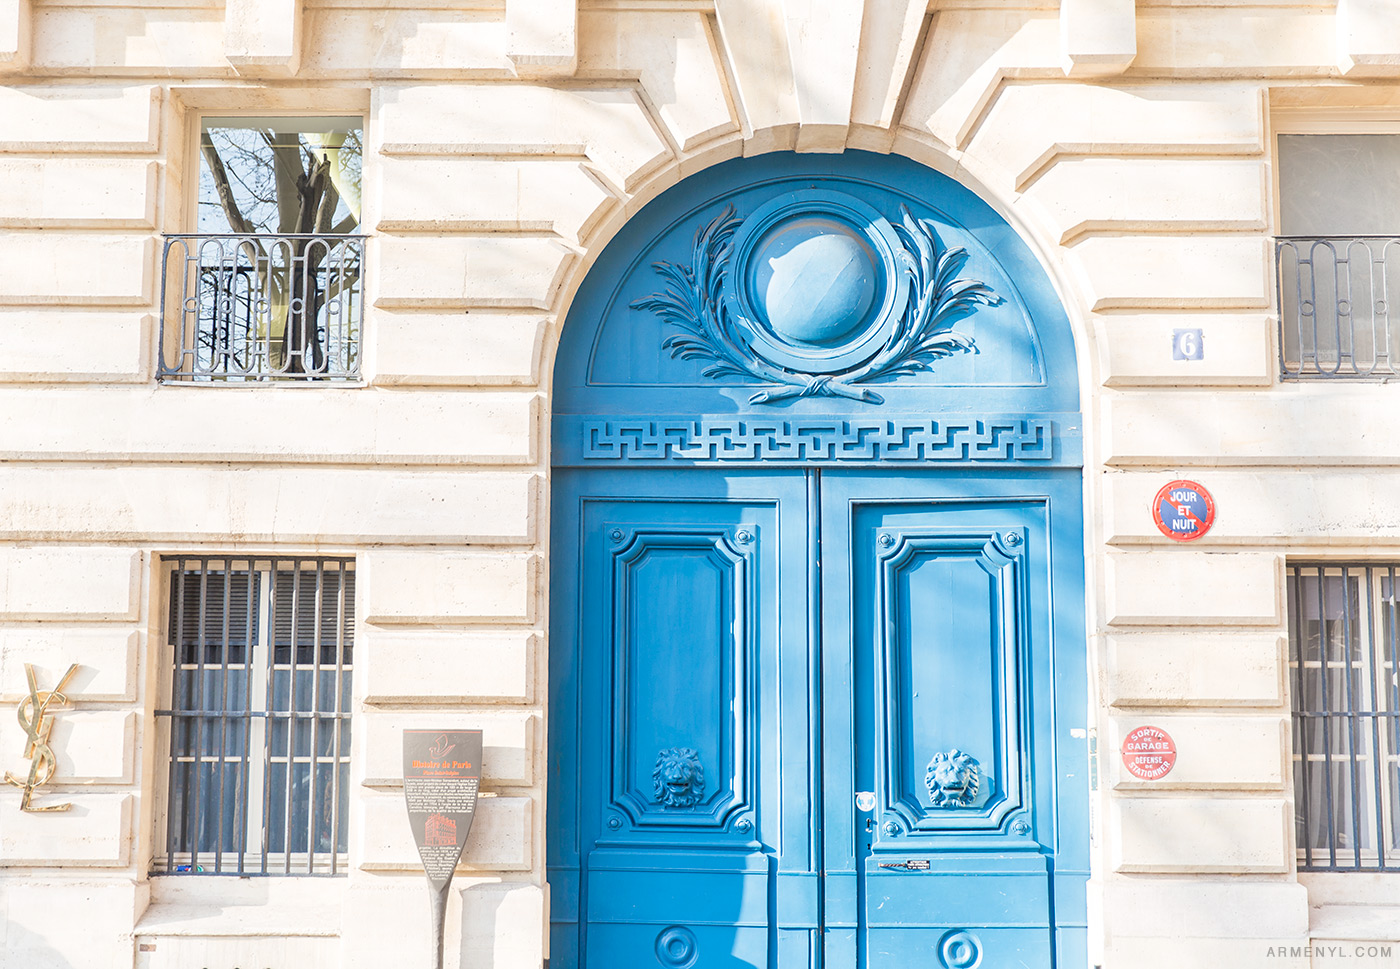 Paris-Doors-Sunny-day-in-Paris,-France-photographed-by-Armenyl.com